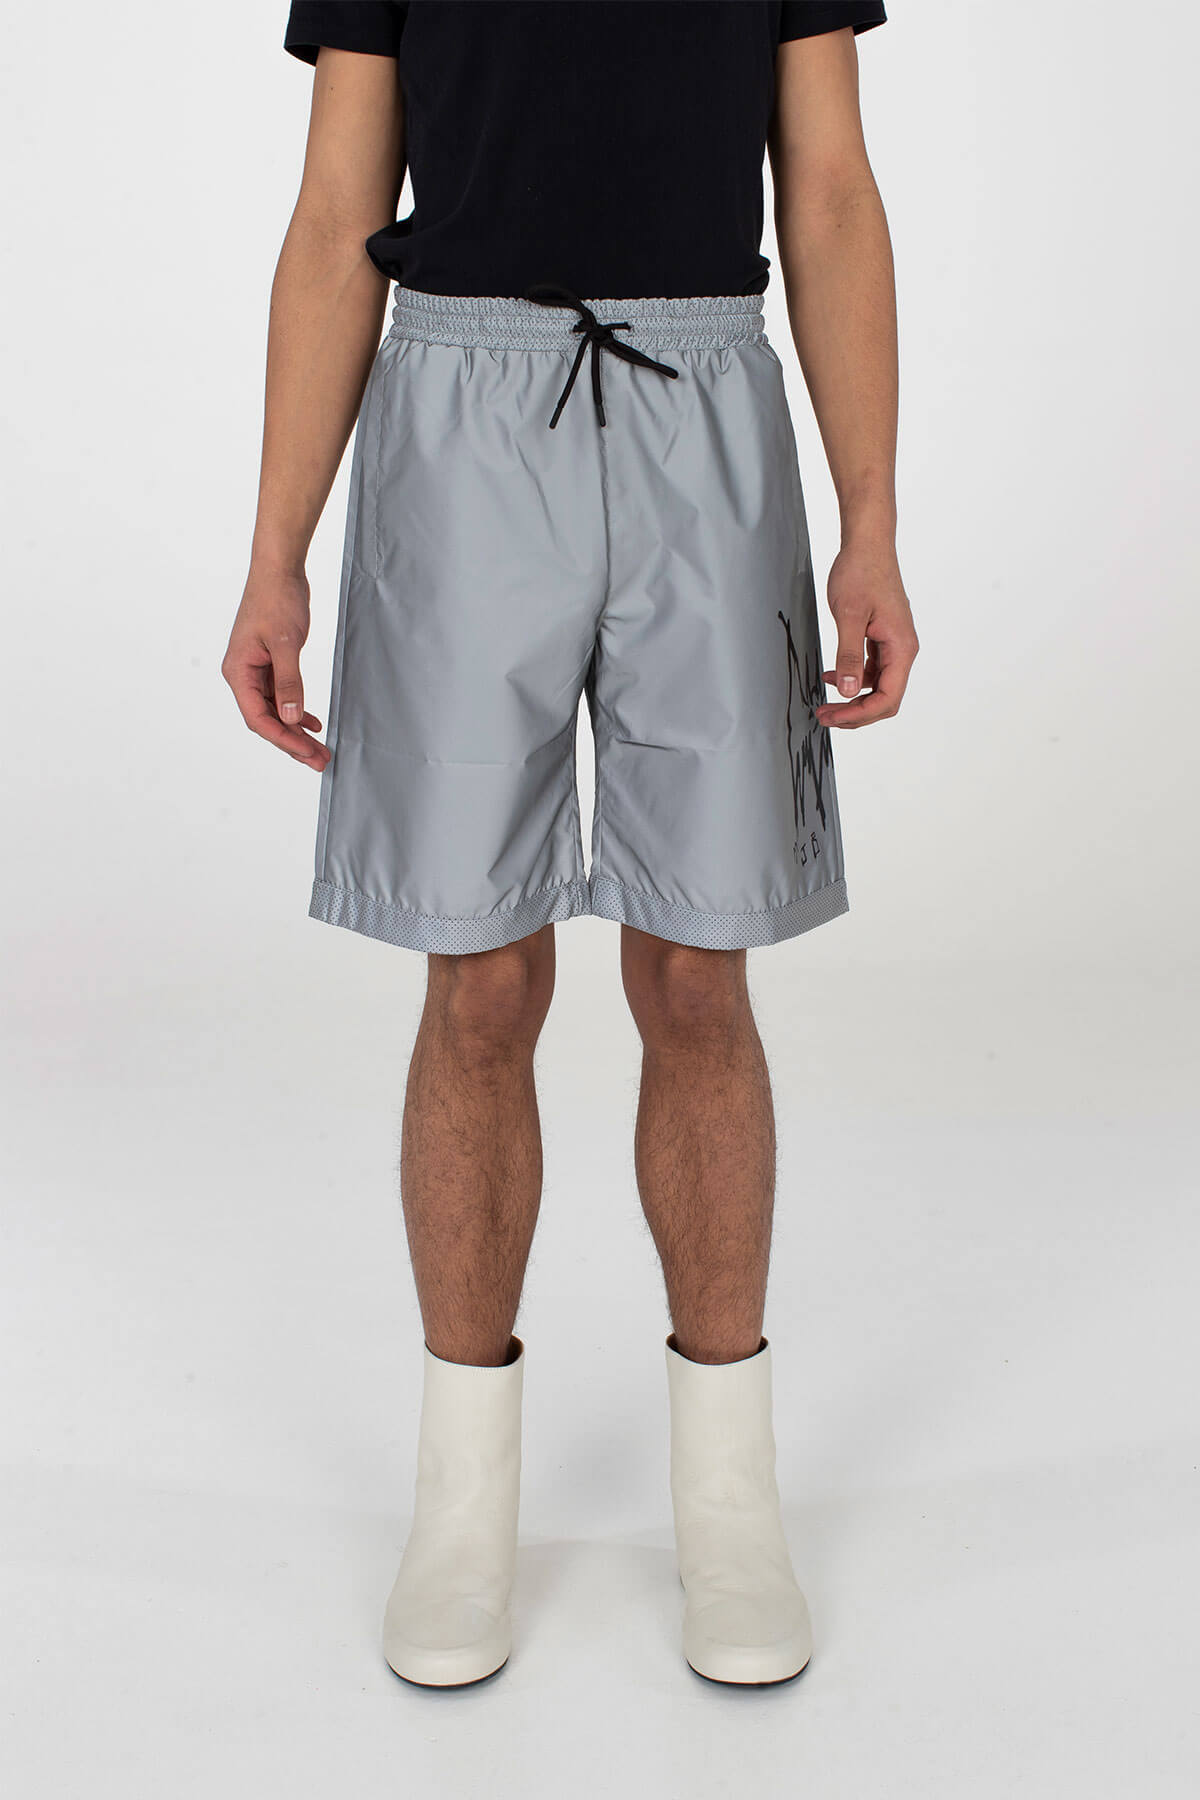 BASKETBALL SHORTS - 3M - MJB